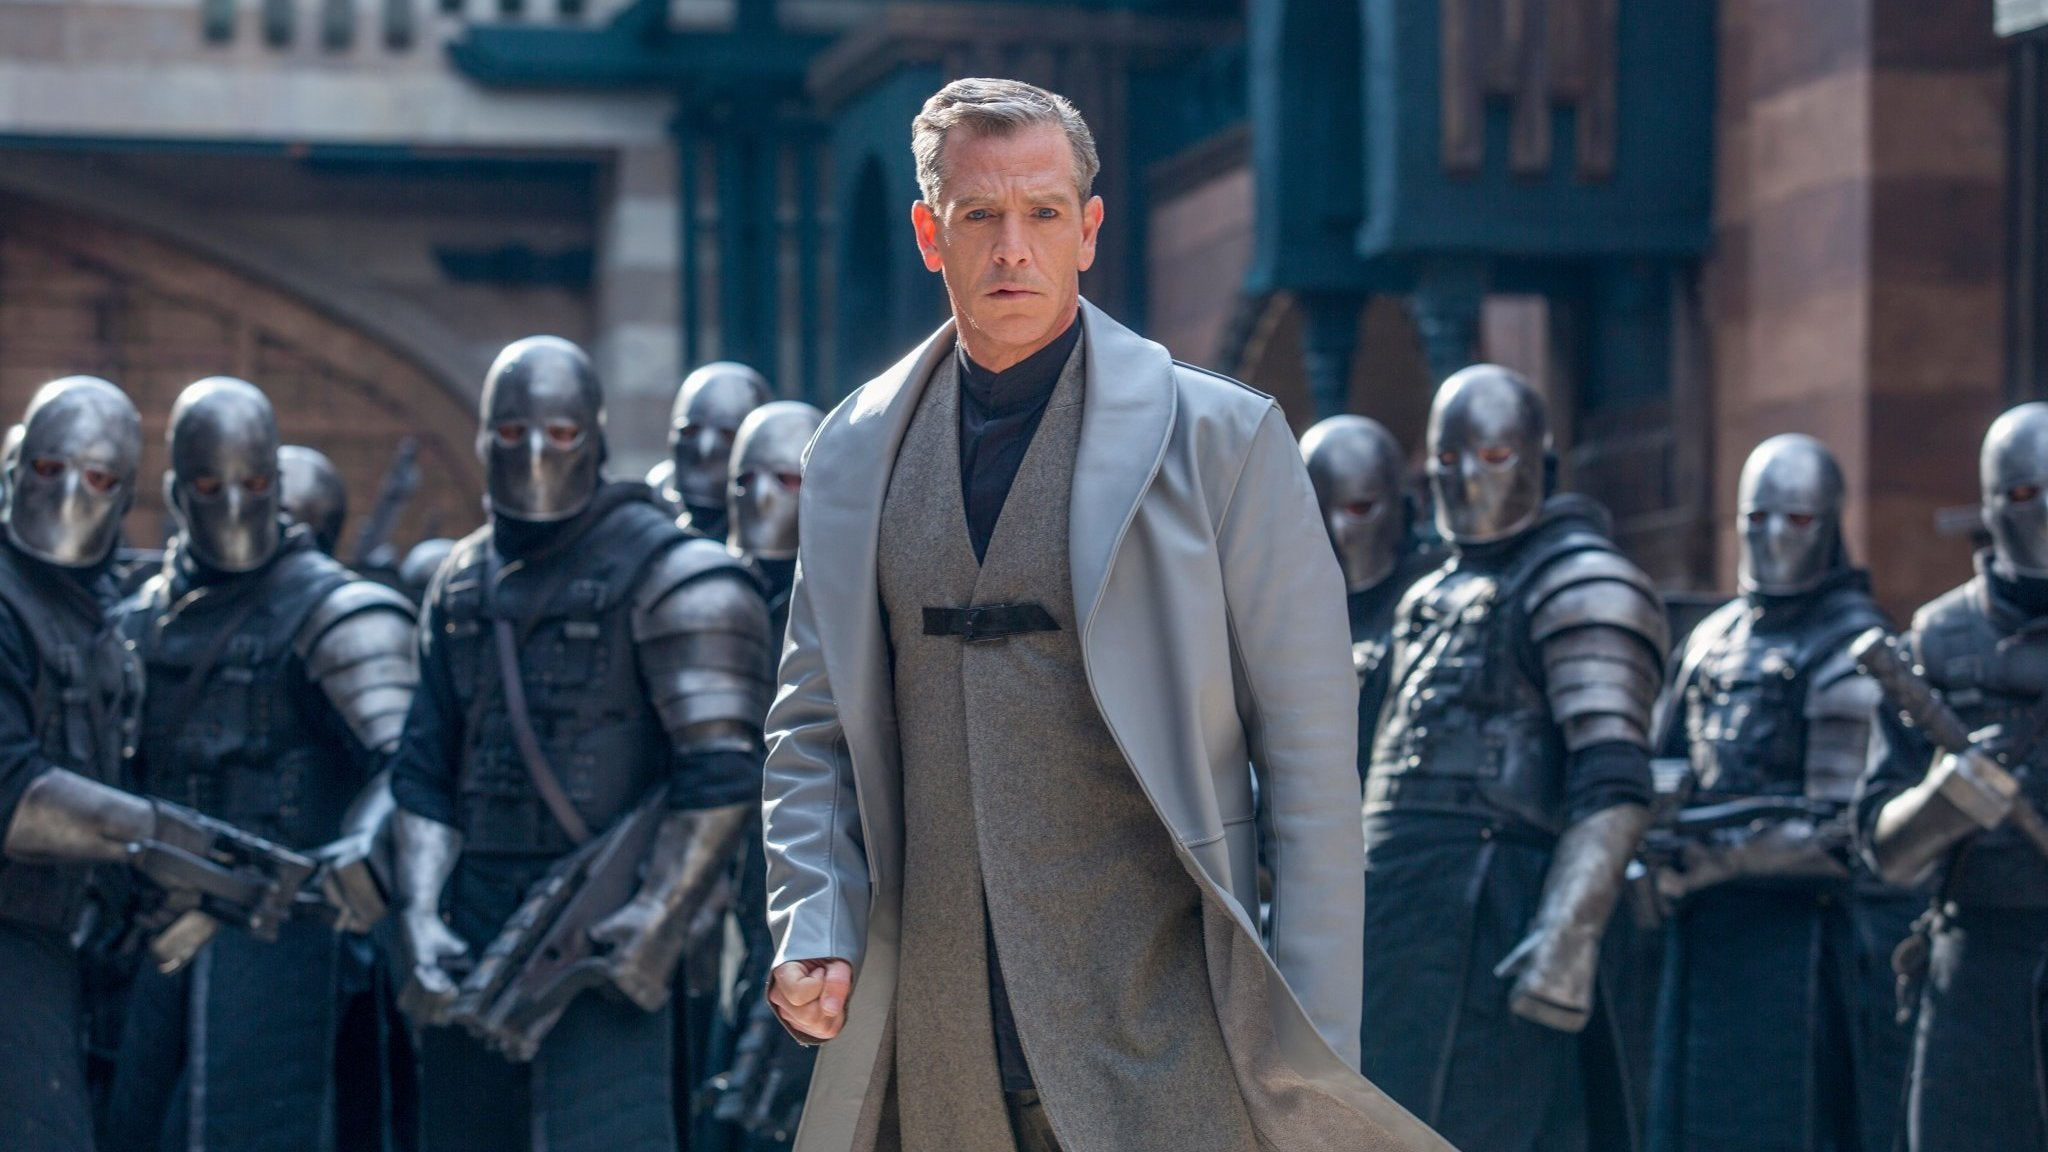 Looks Like Ben Mendelsohn Wandered Off The Rogue OneSet And Stumbled Onto The NewRobin Hood Movie